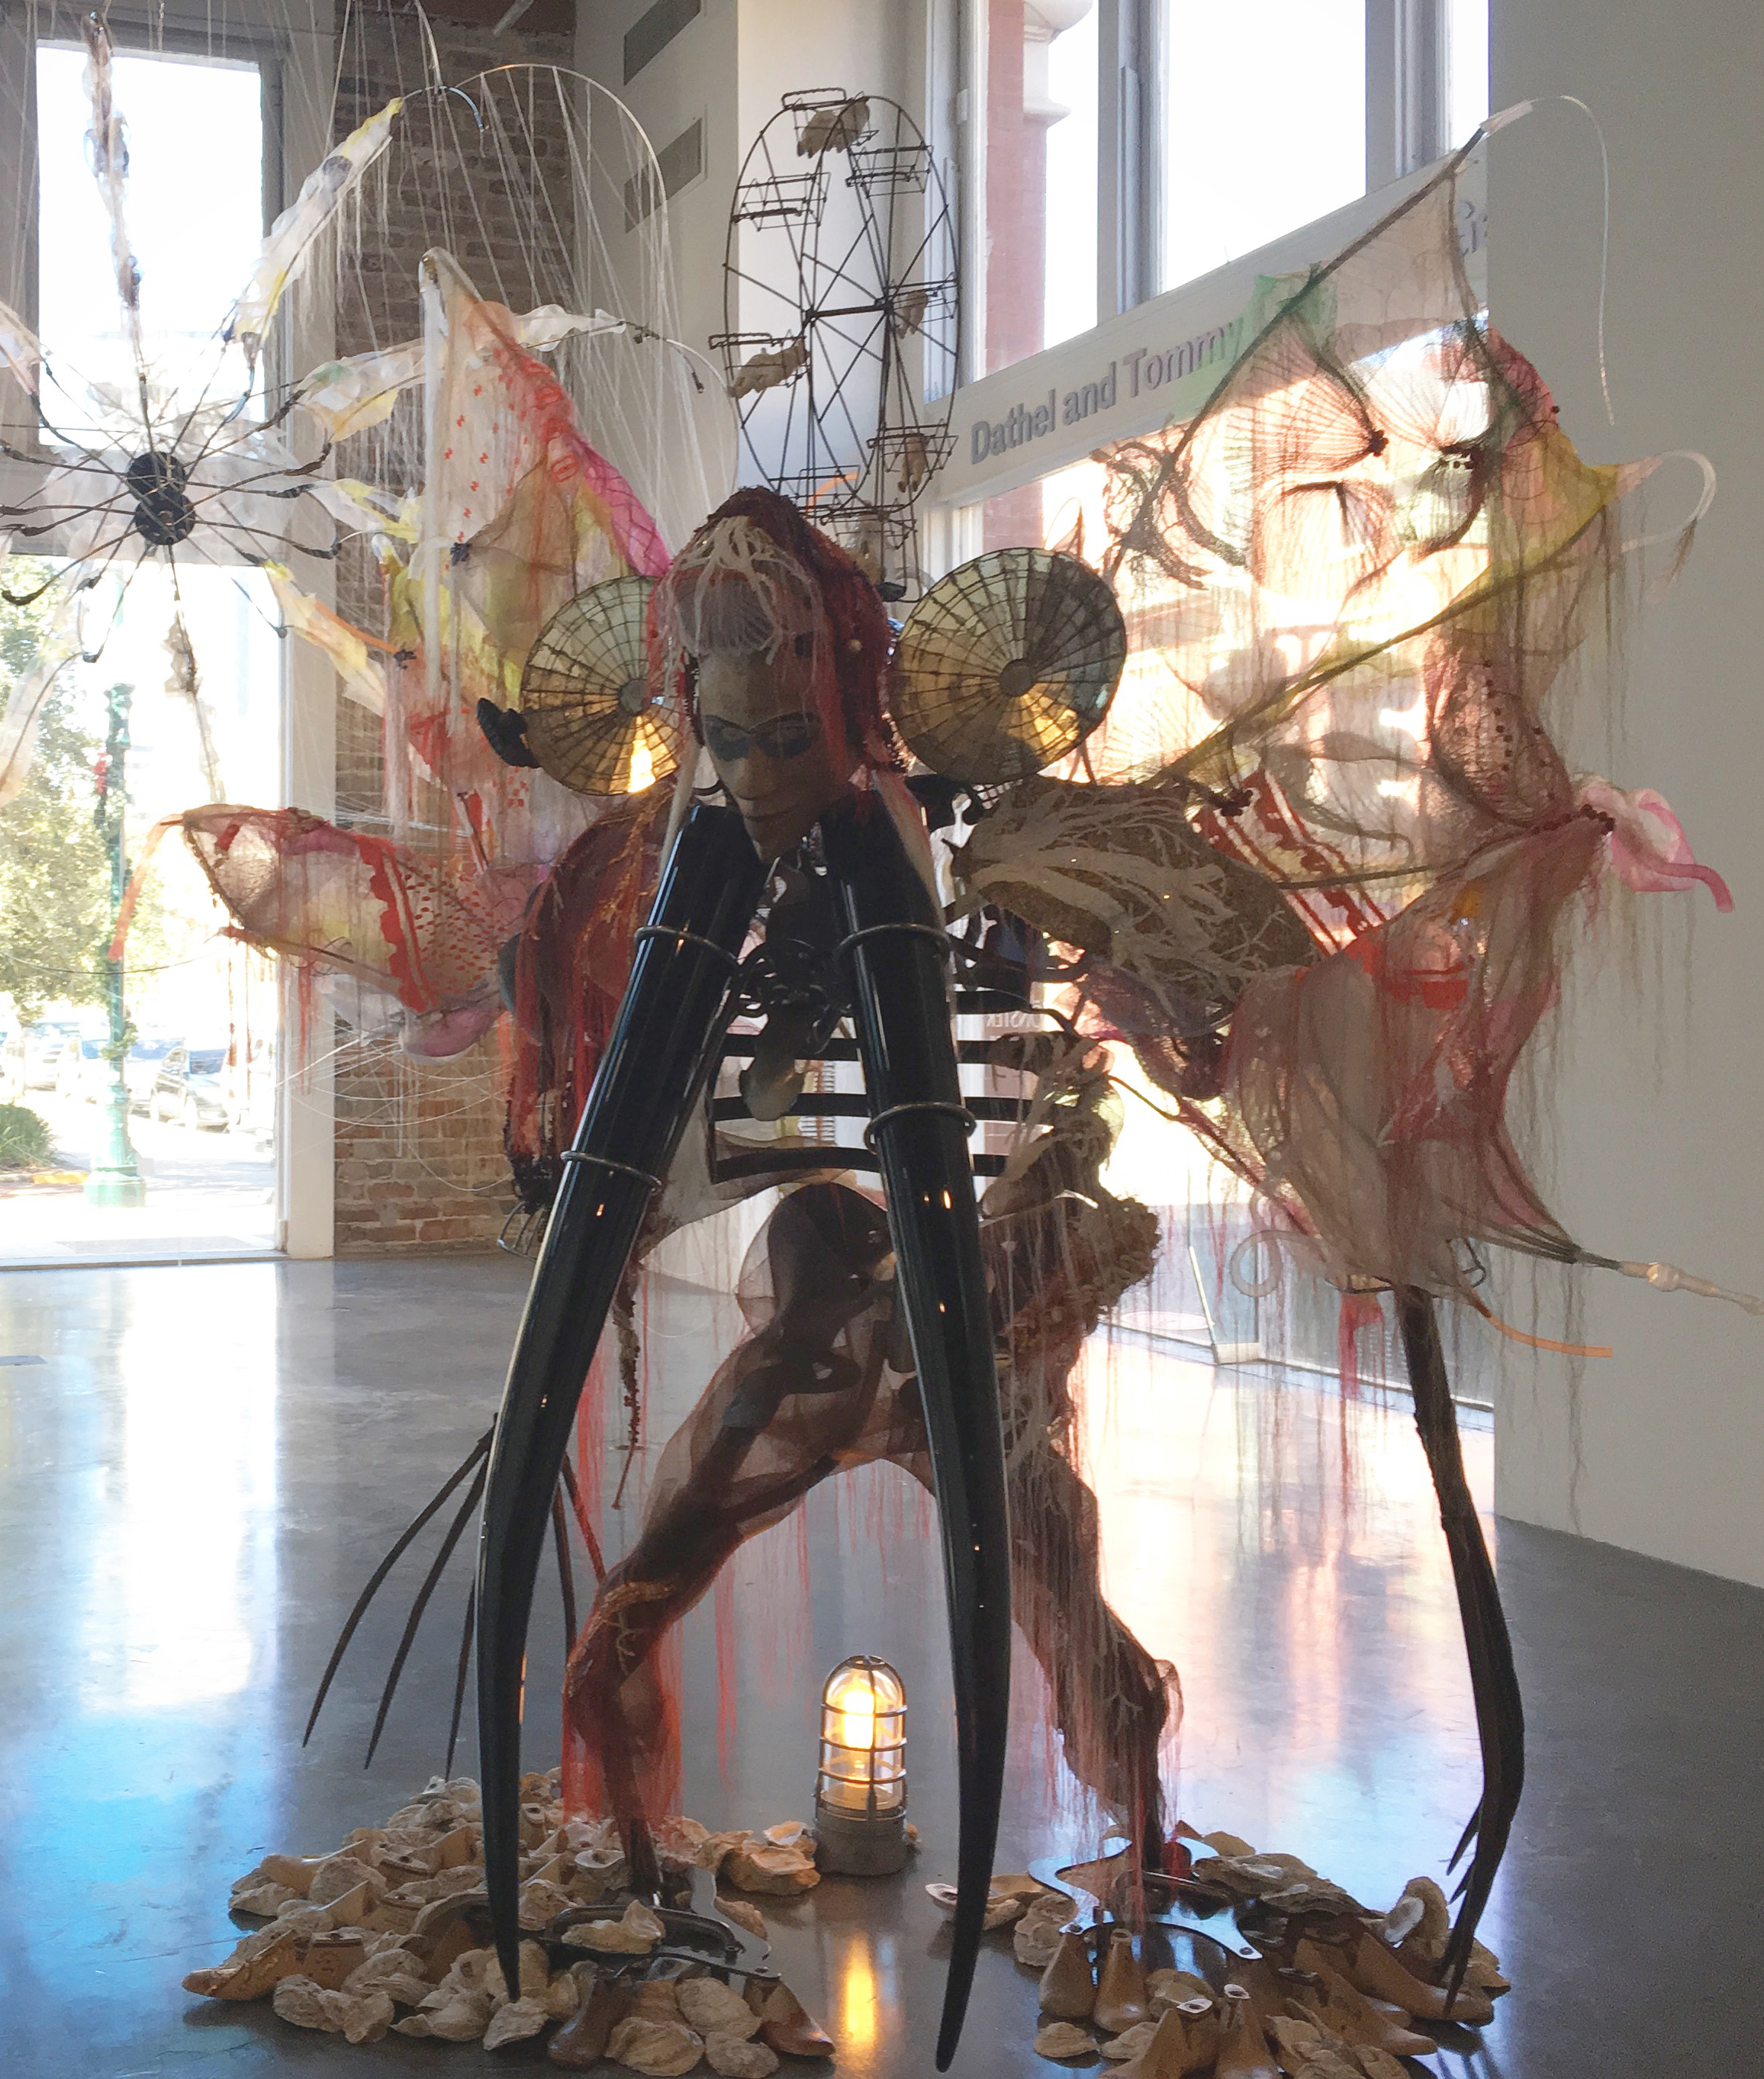 Rina Banerjee on view at the Contemporary Arts Center